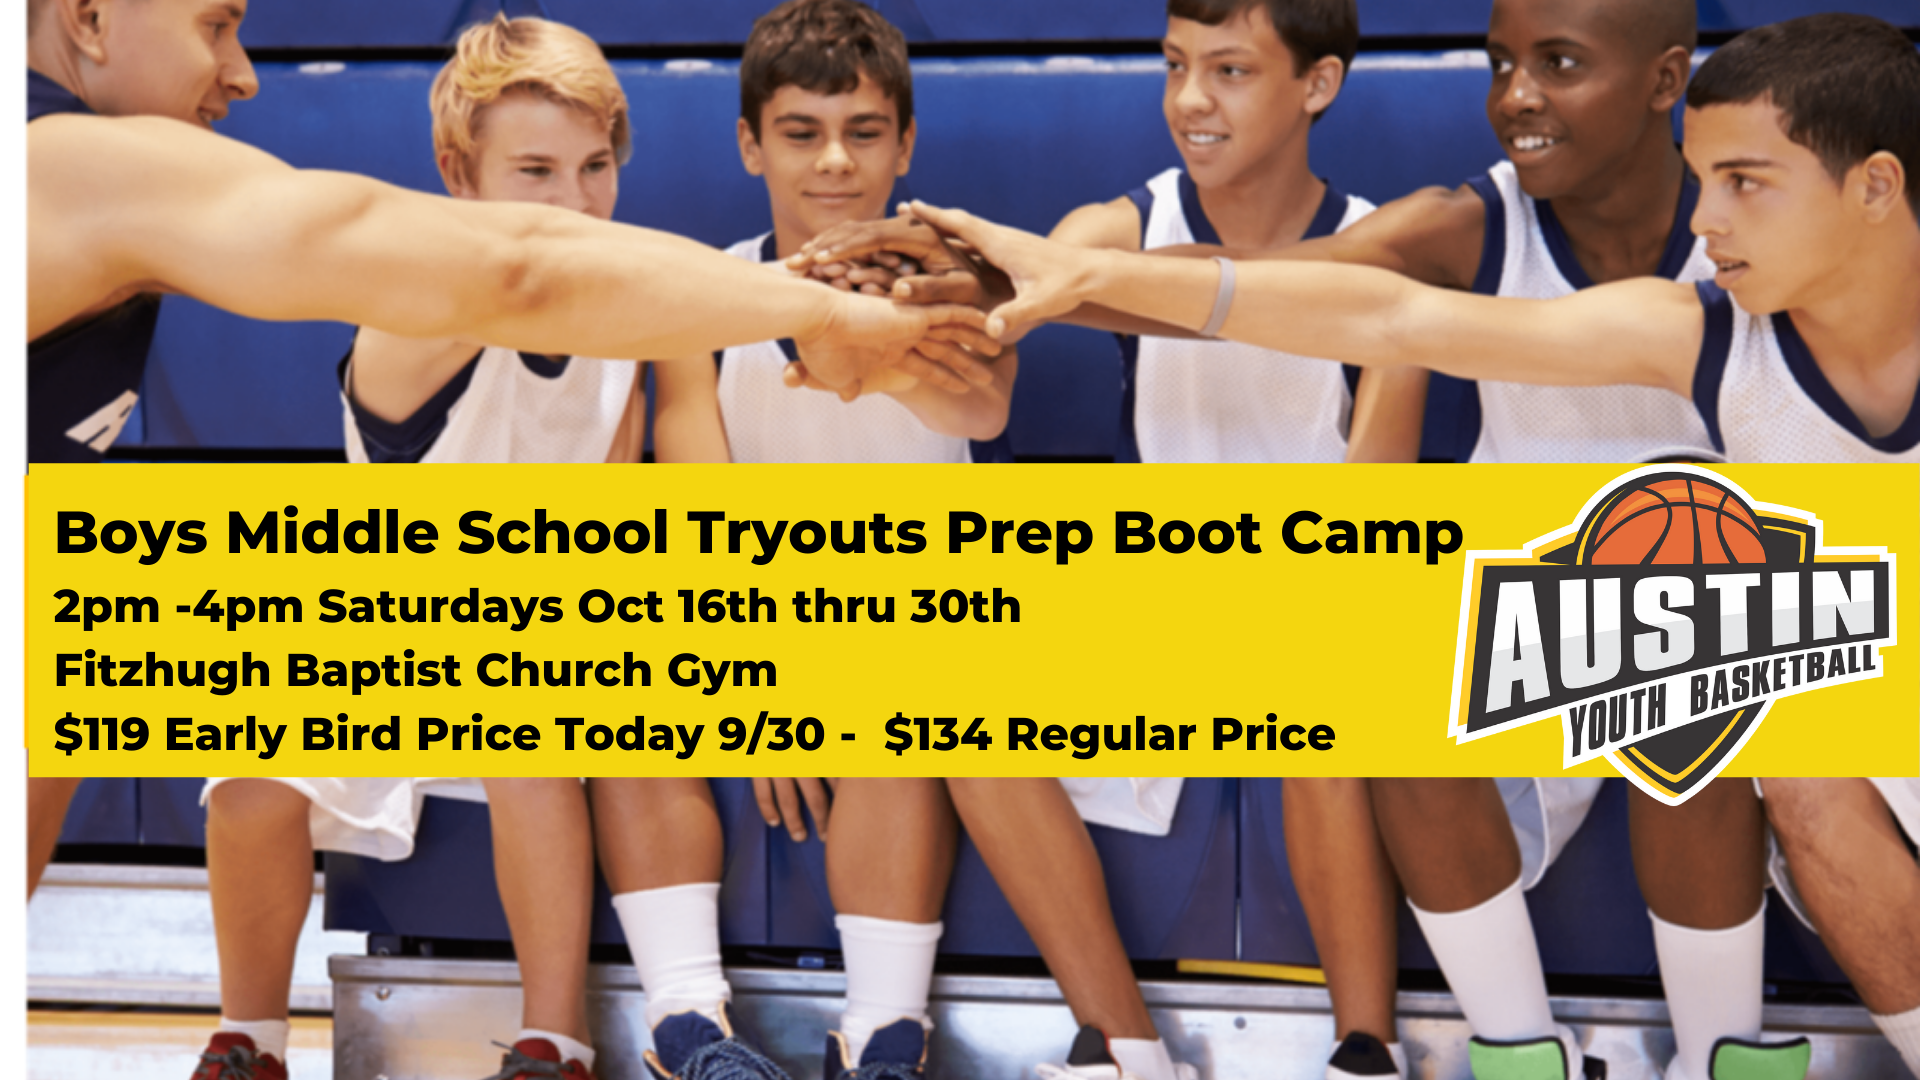 Austin Boys Middle School Basketball Tryouts Boot Camp